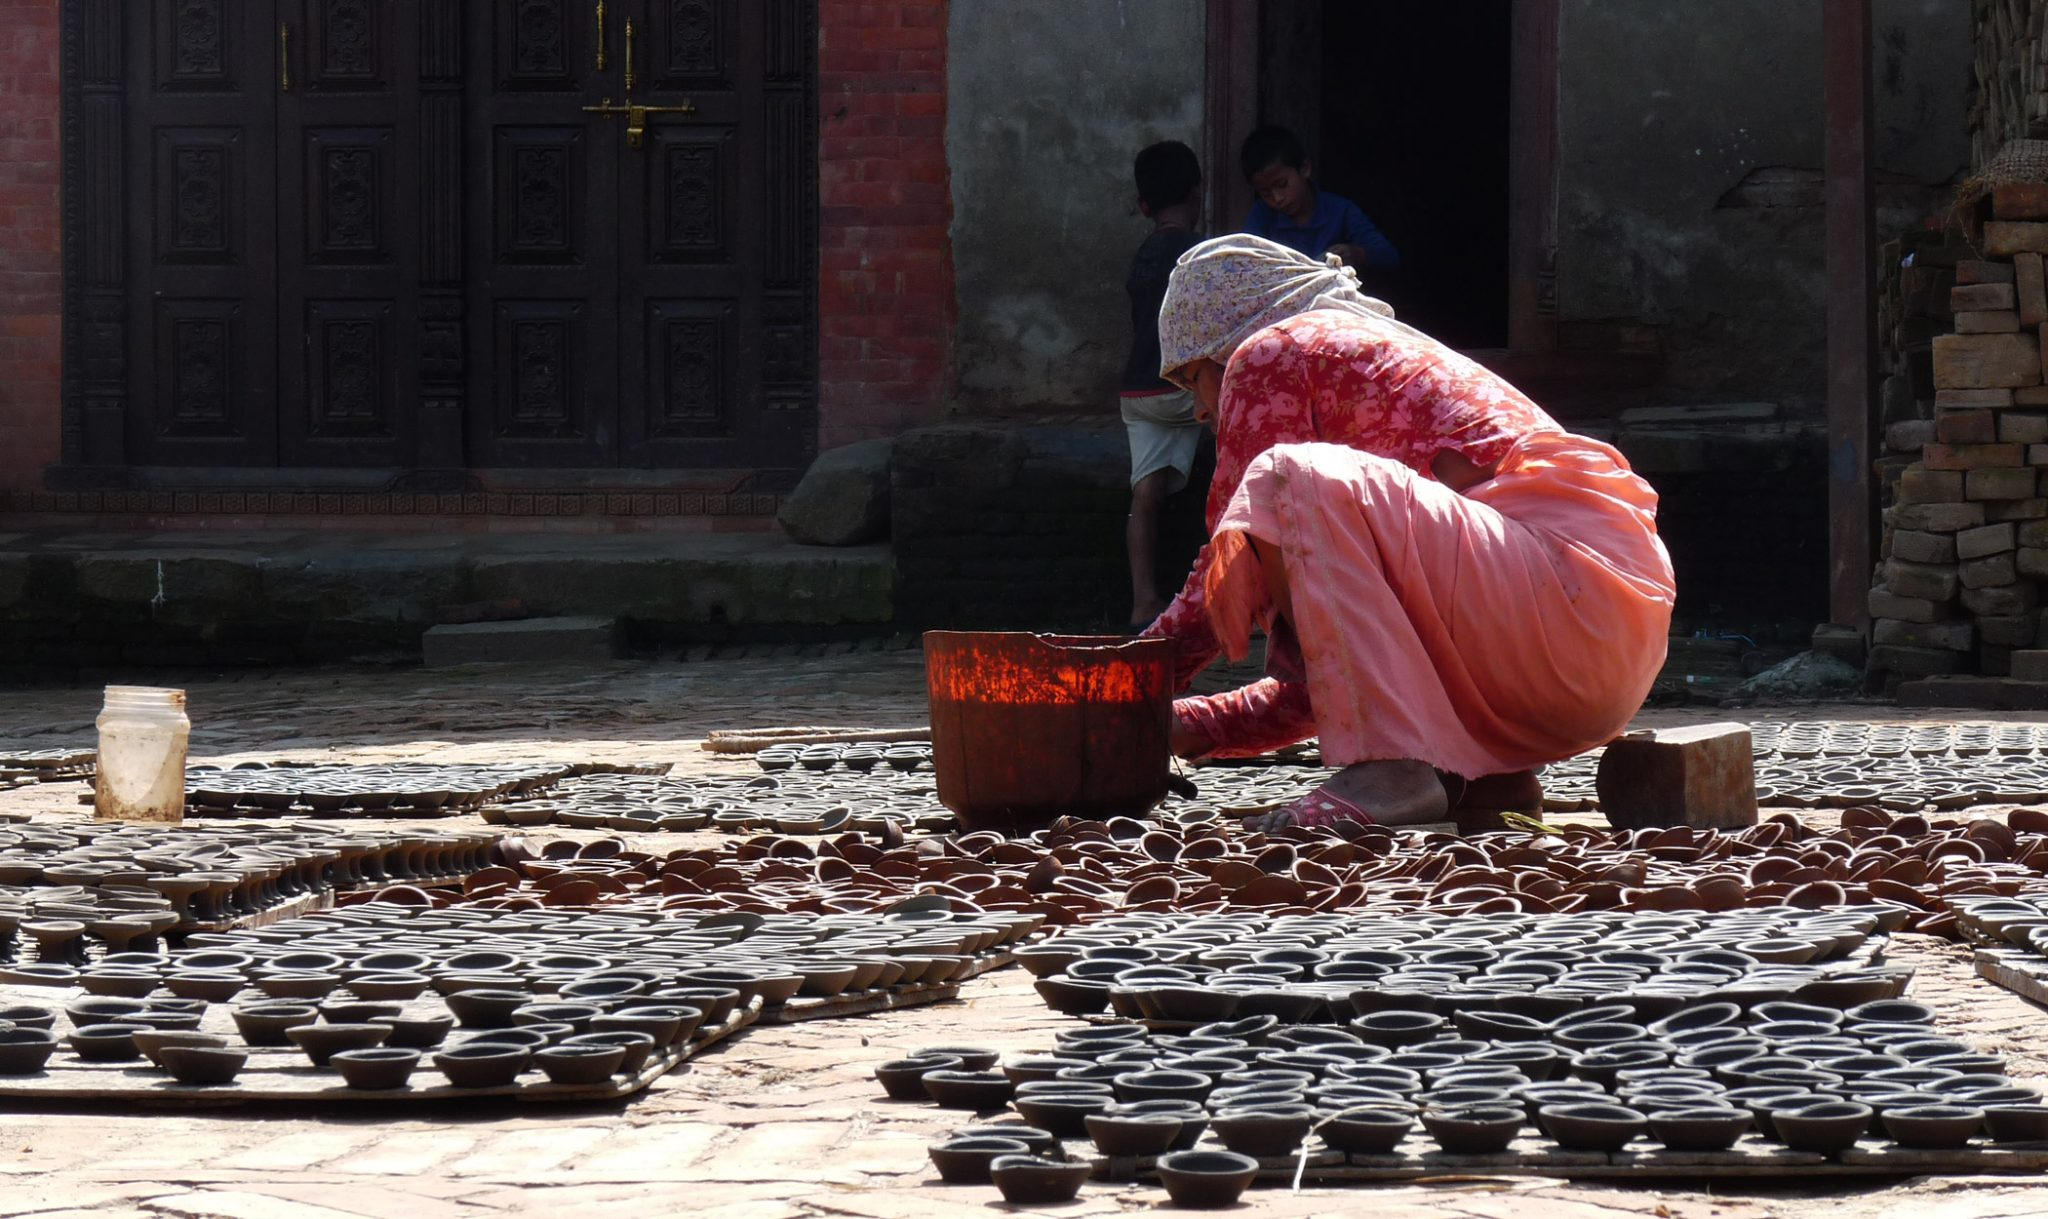 "Bhaktapur is famous for its traditional pottery industry, and is home to two ""pottery squares"" where rows of clay pots can be seen drying in the sun. The potters are particularly busy during the Tihar festival of lights - one of the biggest festivals in Nepal - making diyekos (earthen lamps) which are then filled with oil and lit outside each household. In Hinduism, fire is an important symbol of cleansing and purification and its light dispels gloom and darkness."